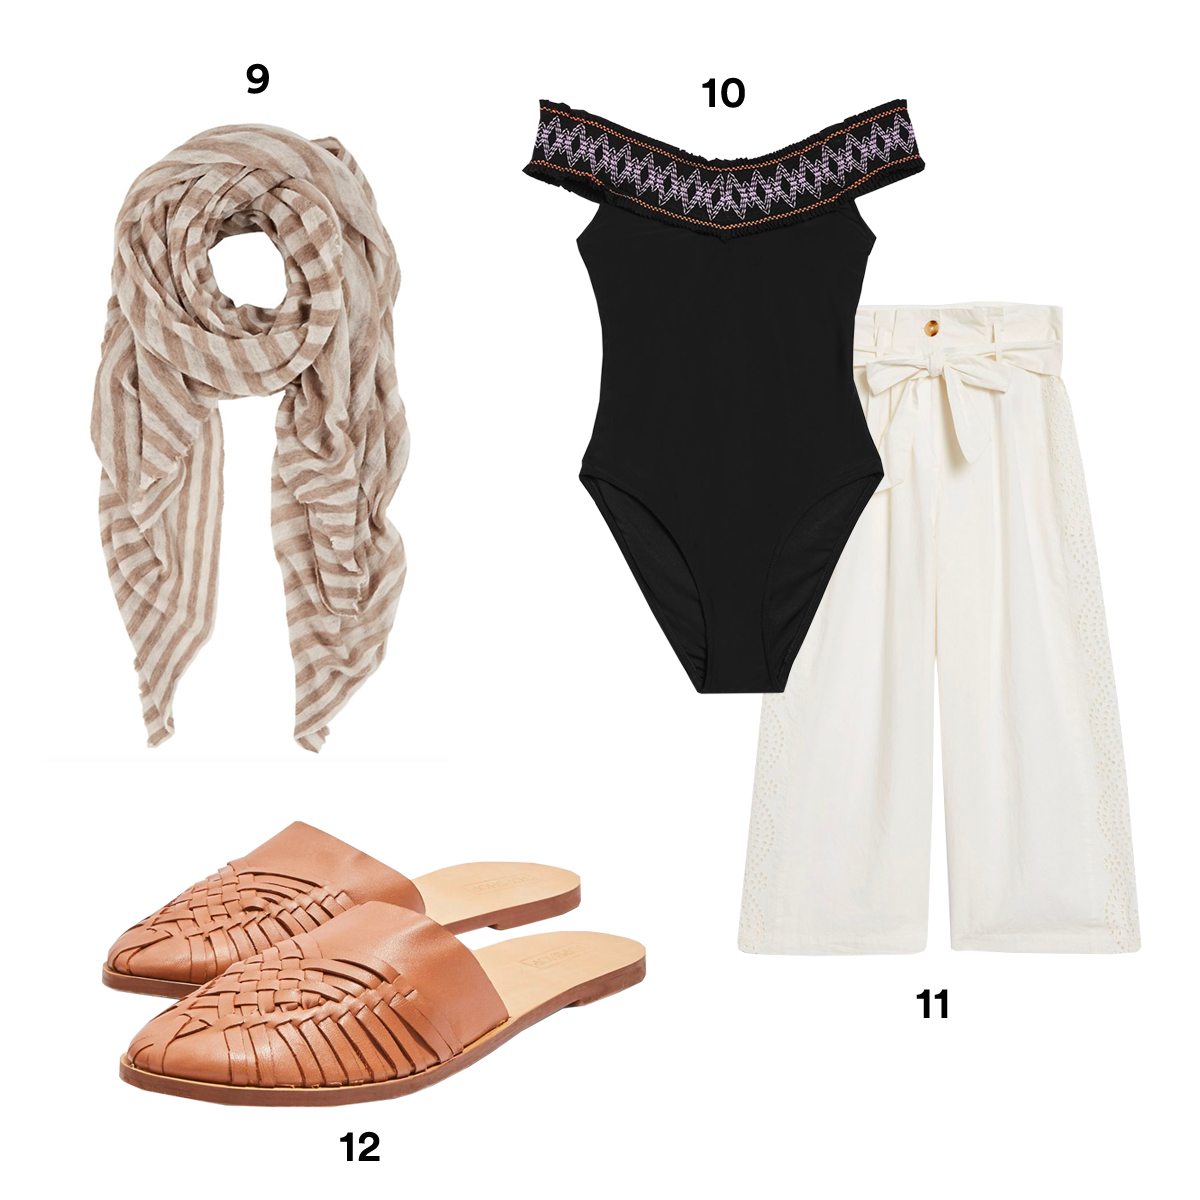 9.) BOTTO GIUSEPPE Wide-Striped Cashmere Stole, available at Barneys New York. 10.) TOPSHOP Shirred Bardot Swimsuit. 11.) TOPSHOP Broderie Anglaise Culottes. 12.) TOPSHOP Amie Woven Mules.